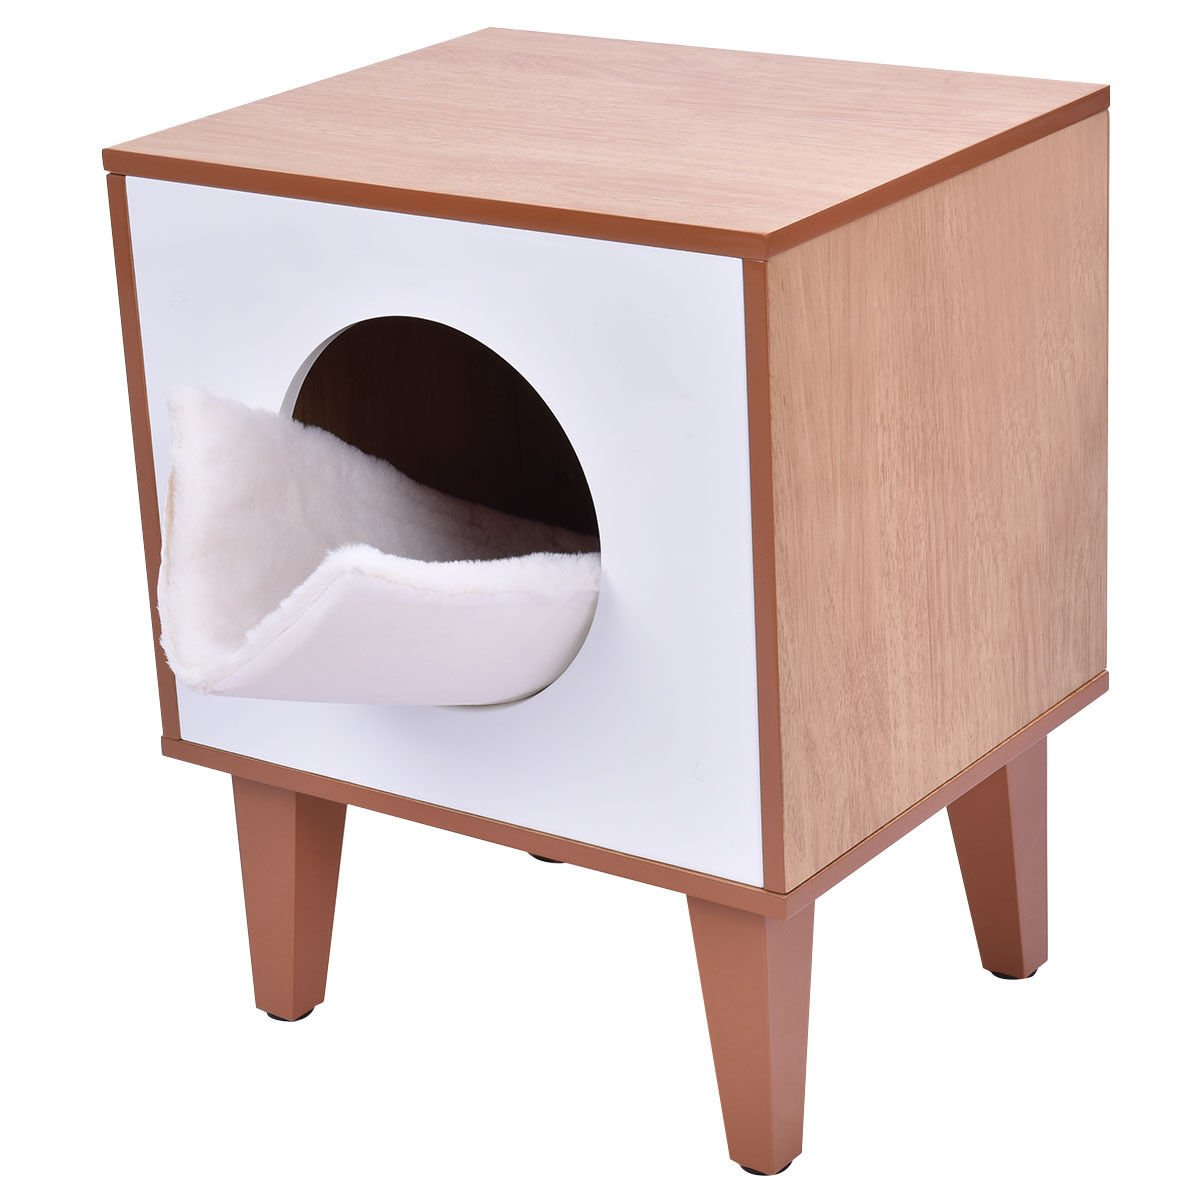 New Cat Box Cushion Bed Cleaning Enclosure Hidden Pet Cabinet Furniture Wood by totoshoppet (Image #2)